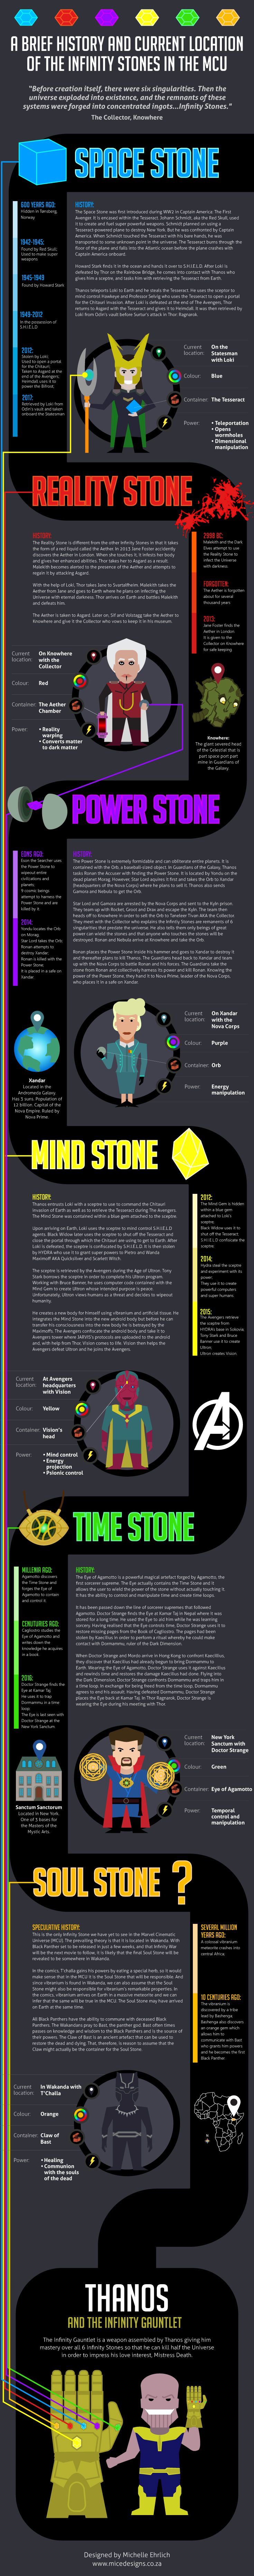 A Brief History And Current Location Of The Infinity Stones In The Mcu Superhero Stuff Pinterest Marvel Current Location And Infinity